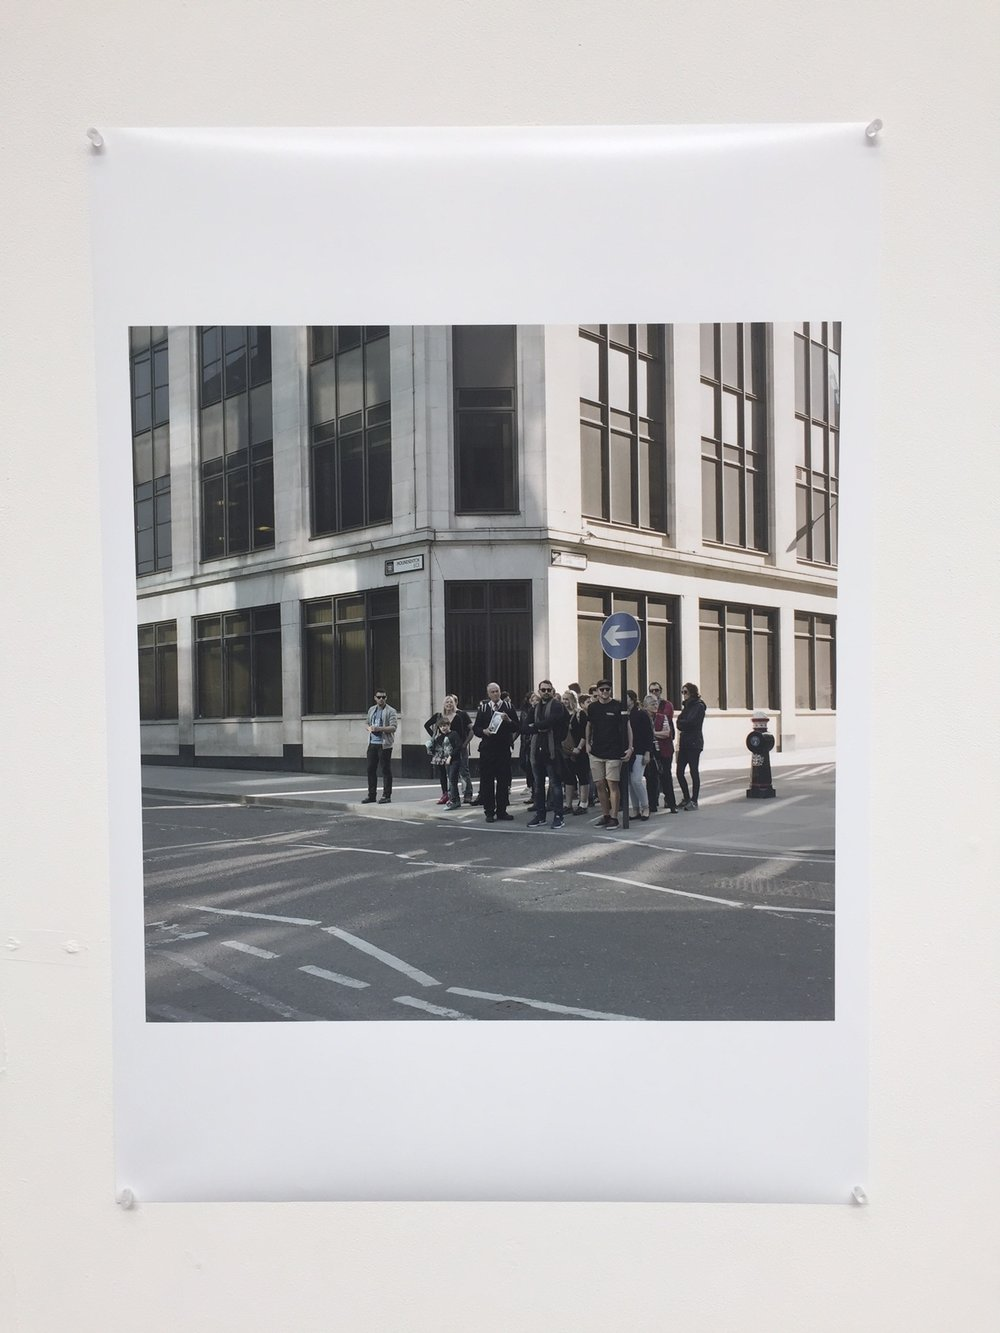 Original A1 print exhibited at The Old Truman Brewery.£499 - Item Code: EP3